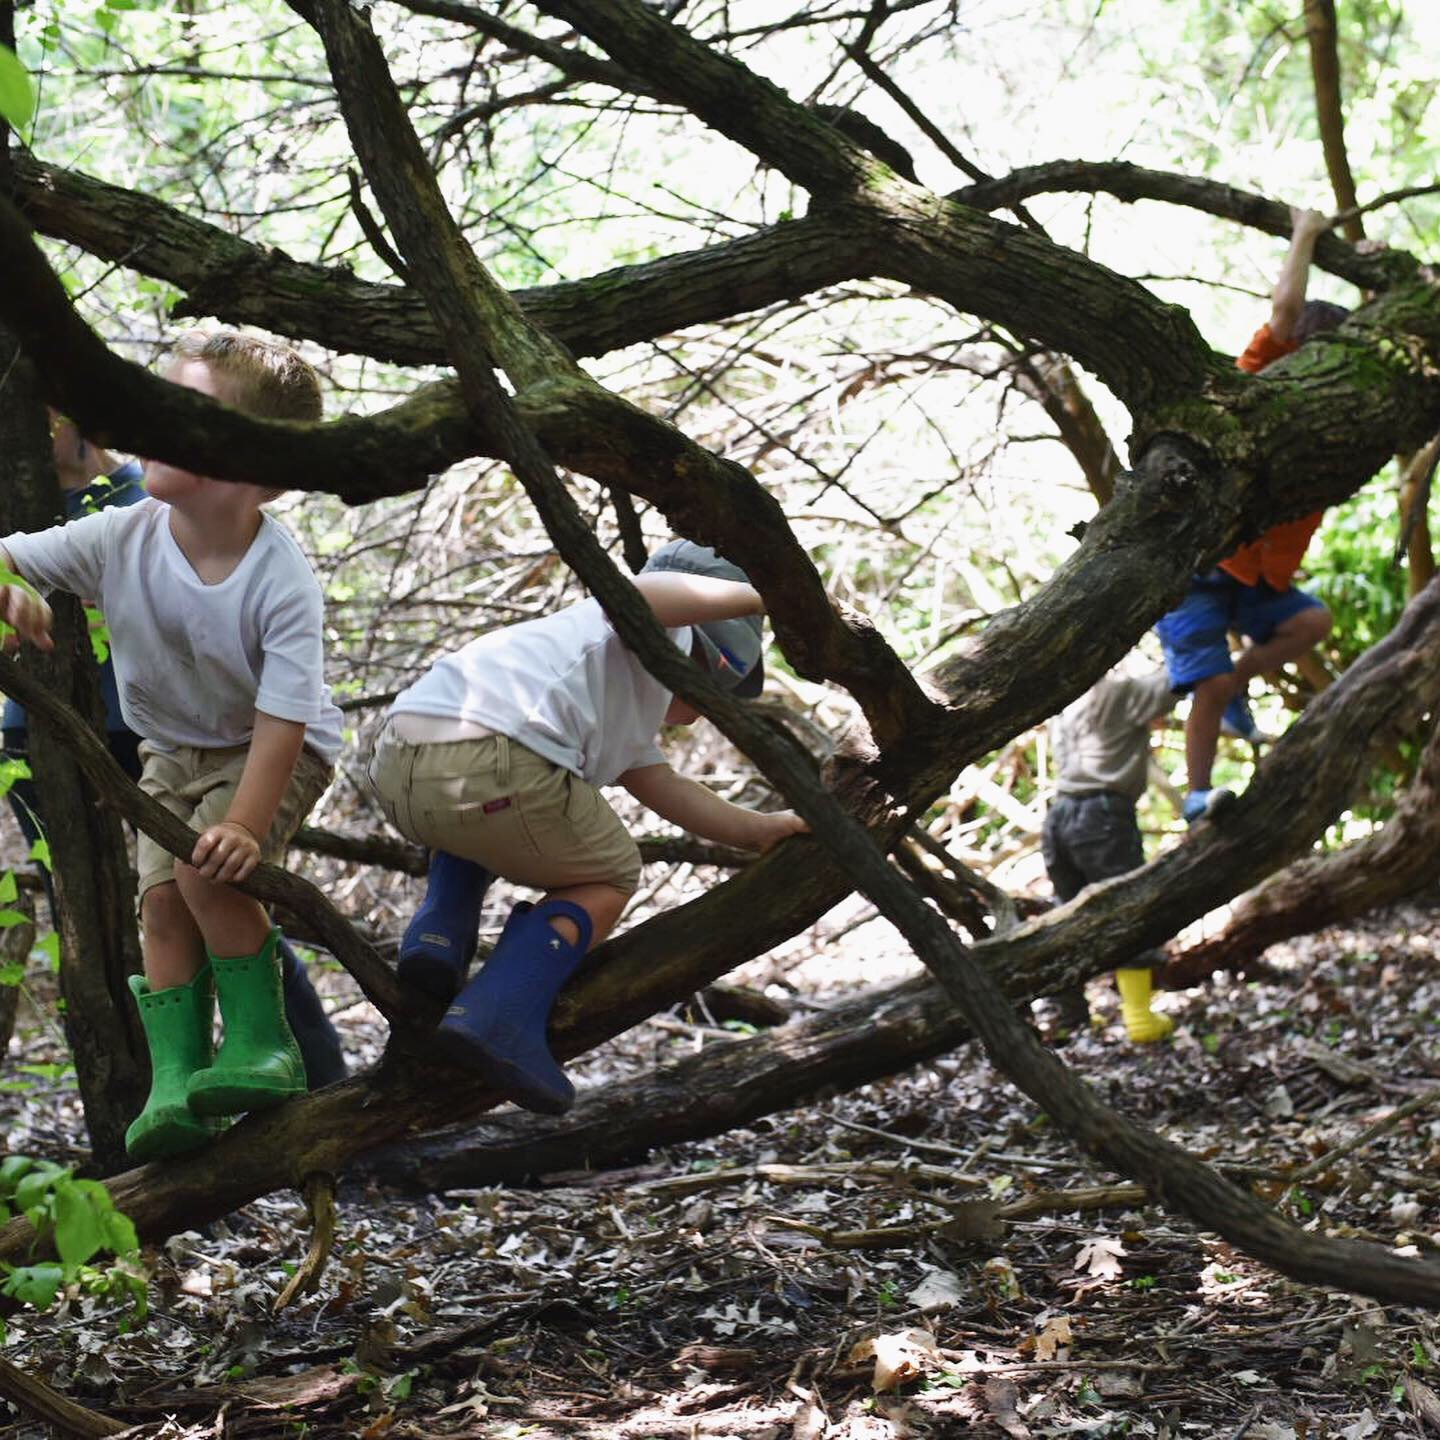 4. Climb that tree. - Pro tip: while it's not OK to climb trees at conservation areas like the Arboretum or Dane County Parks, Madison Parks would love for you to get in there and even put up a slack line or hammock. Just make sure you check out their guidelines first.